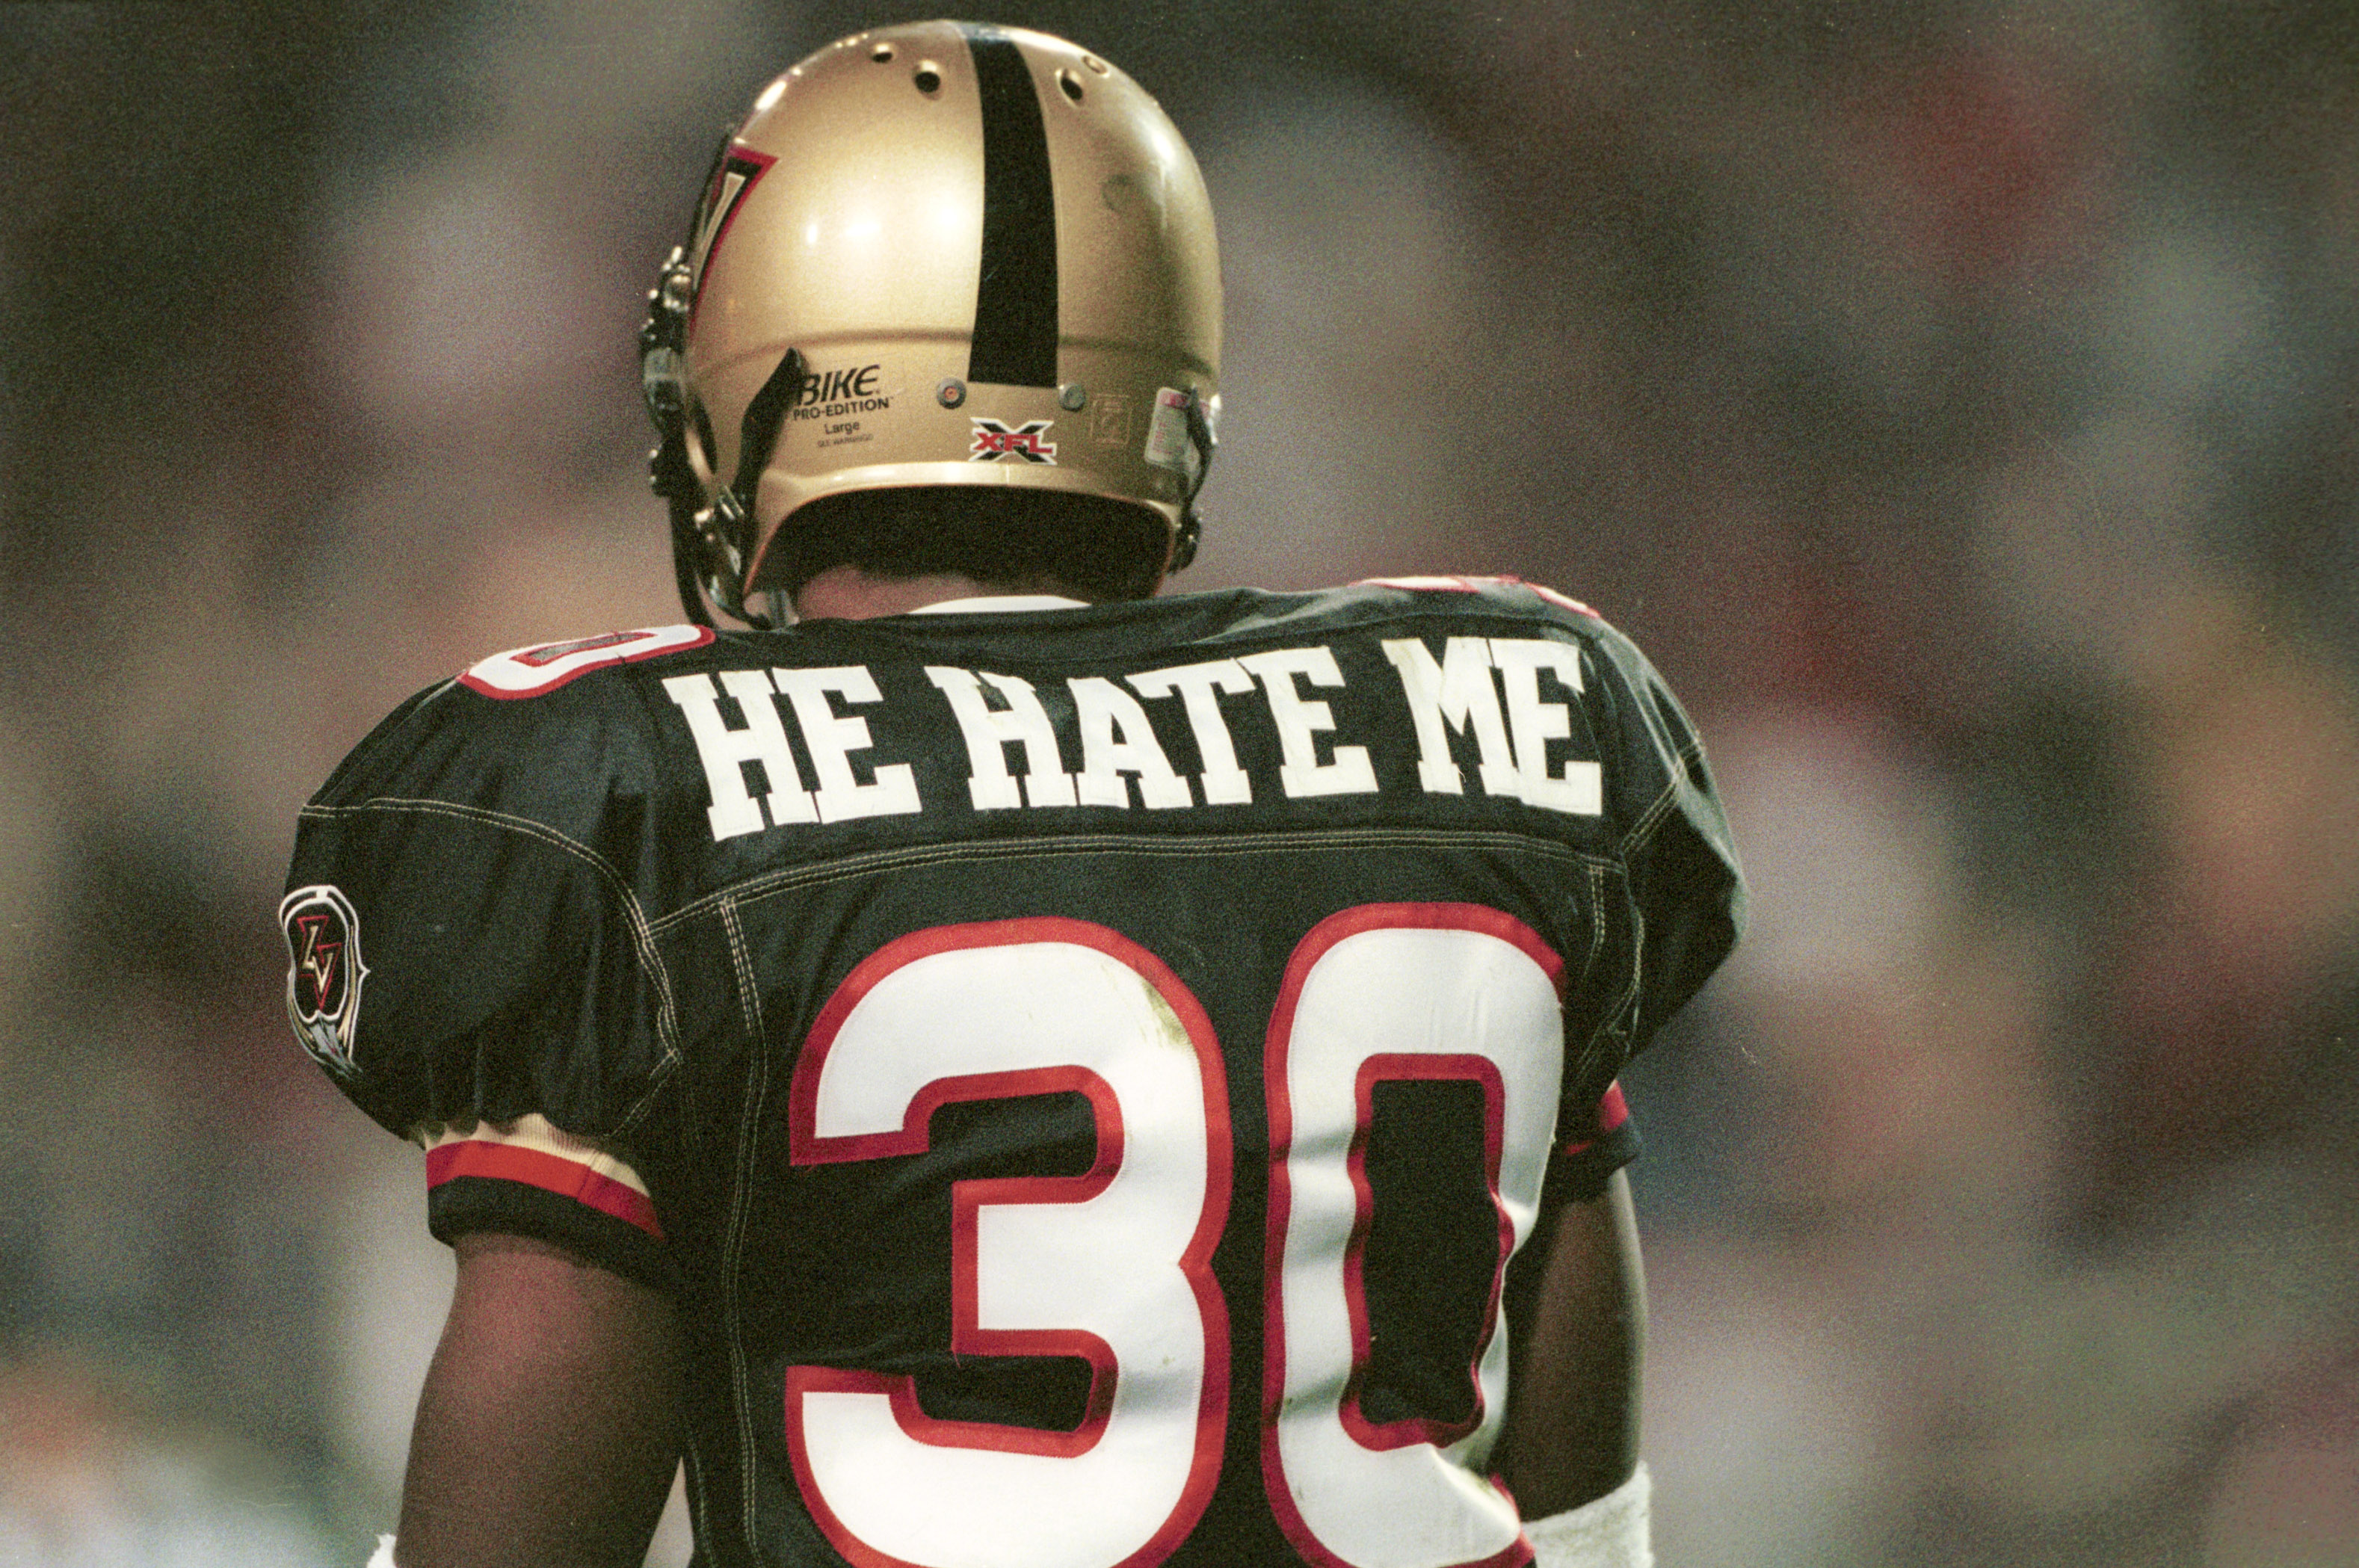 cb85f6d99d2 Barry Bonds, Michael Vick, Kobe Bryant & the 100 Most Hated Athletes ...